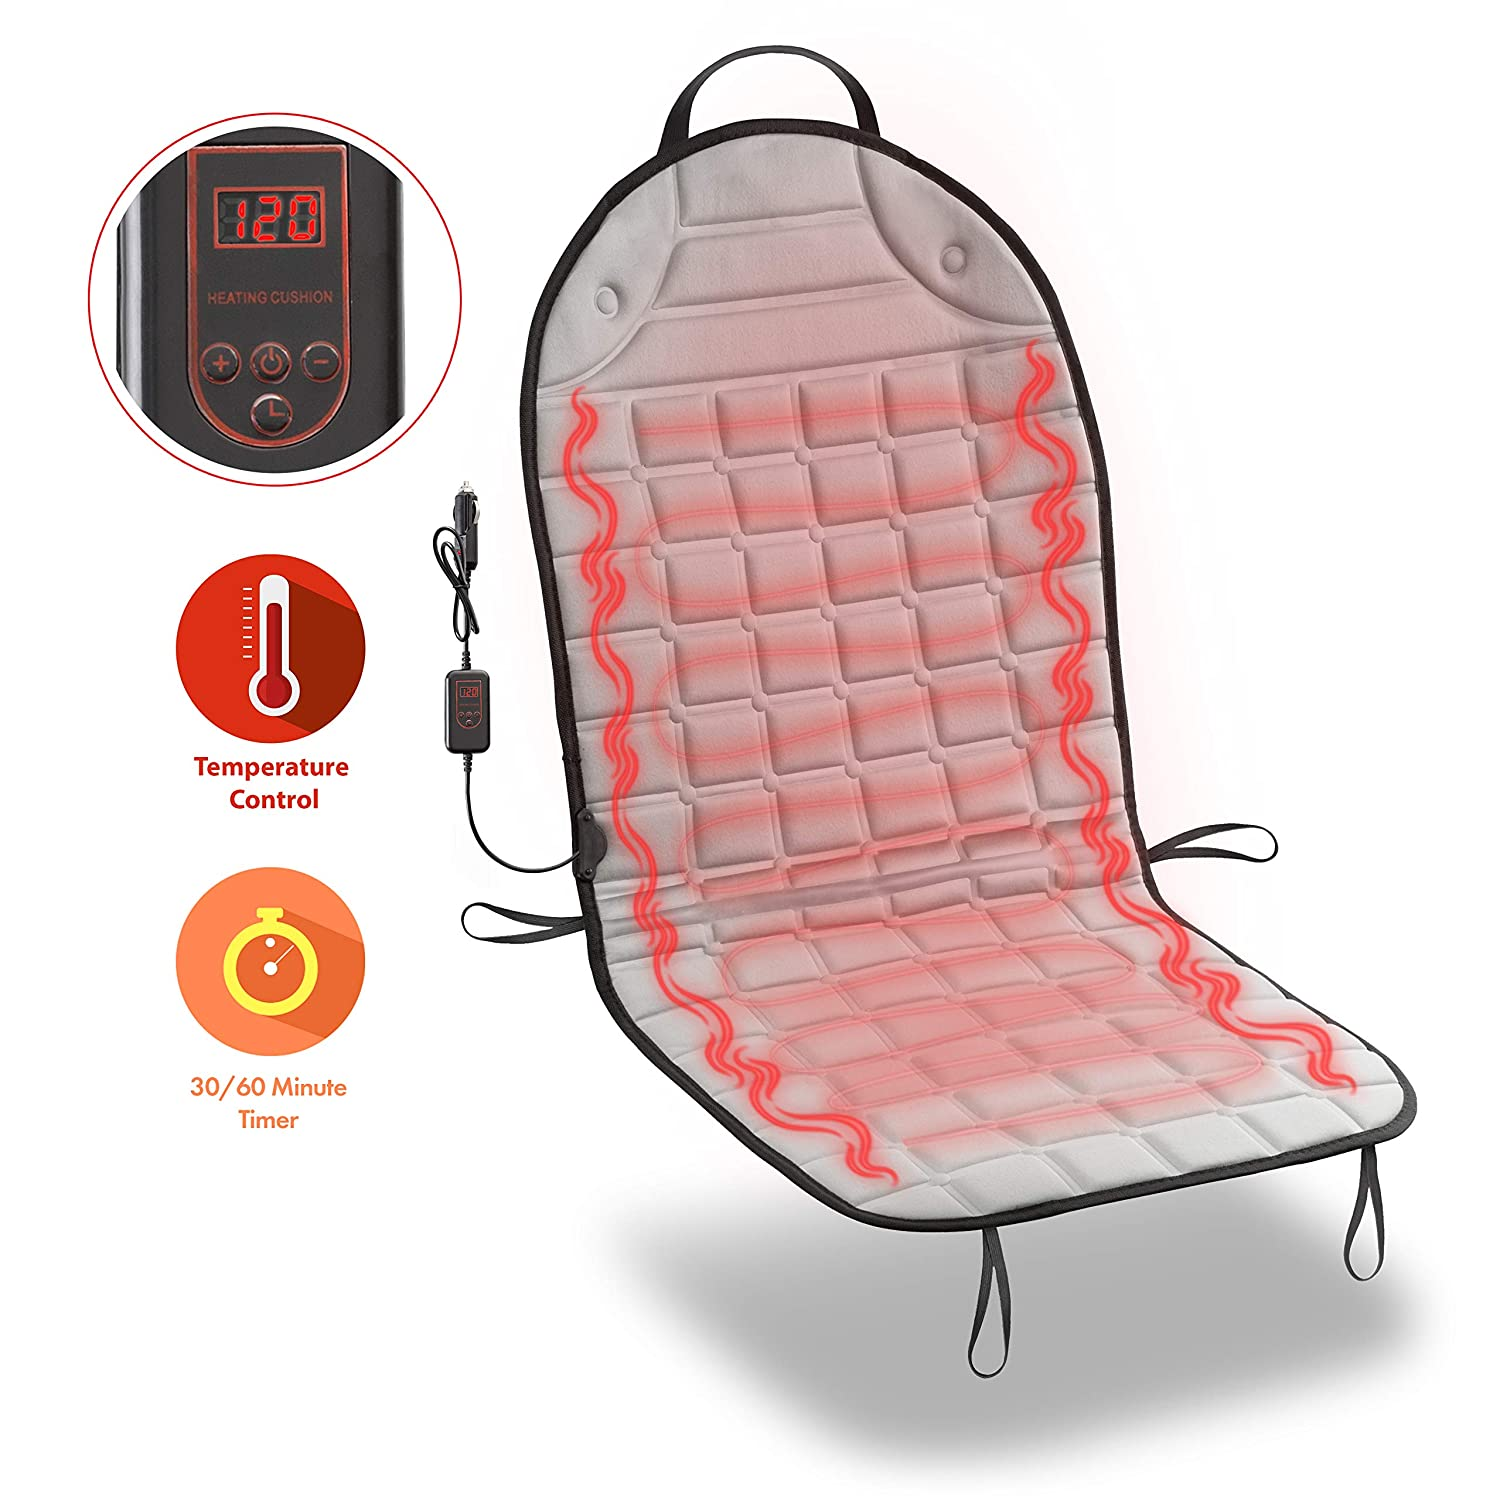 Zone Tech Car Heated Seat Cover Cushion Hot Warmer - Fireproof New and Improved 2019 Version 12V Heating Warmer Pad Cover Perfect for Cold Weather and Winter Driving SE0041